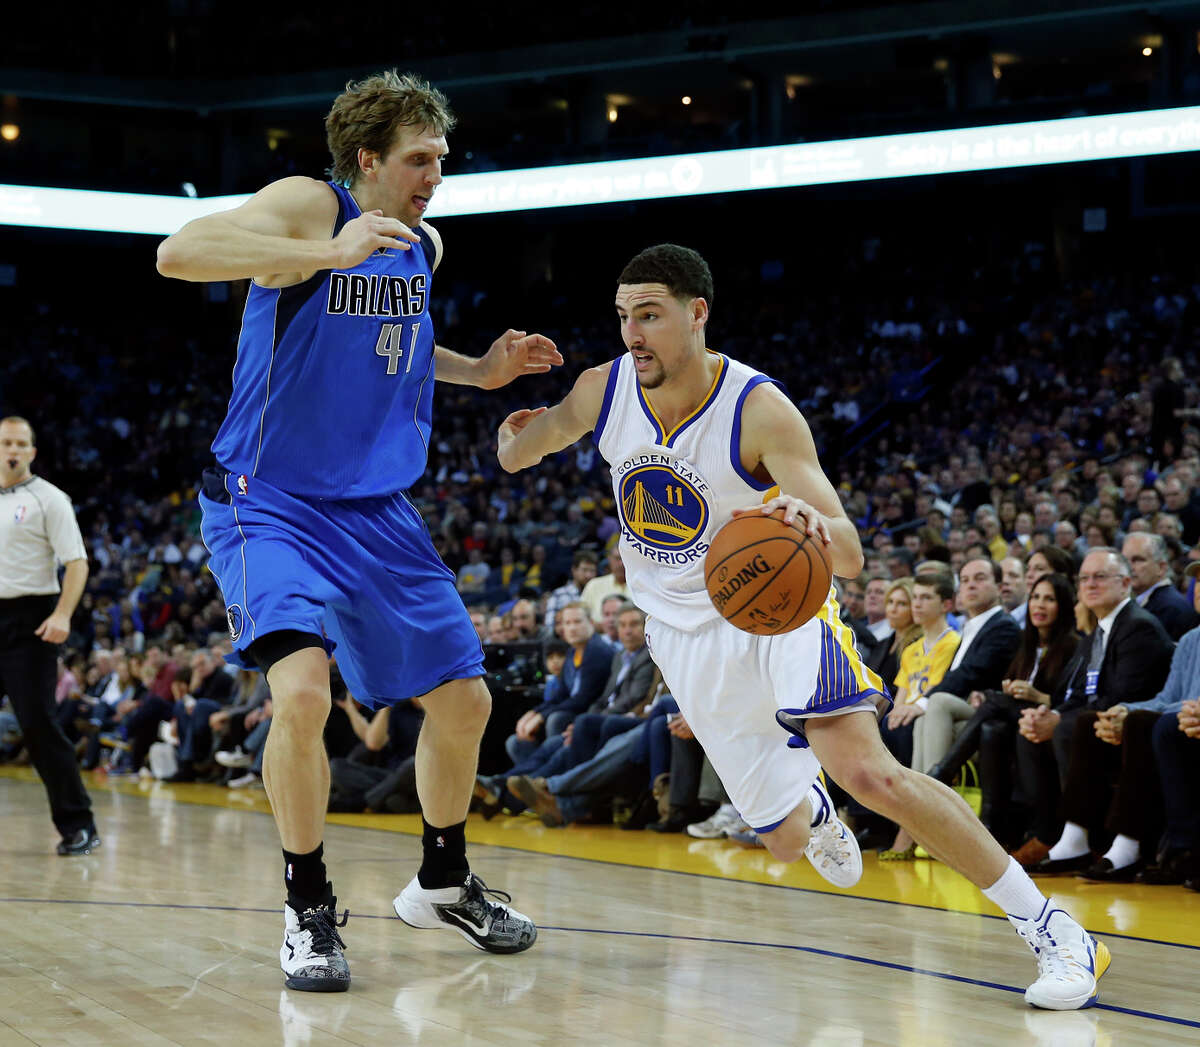 Warriors' fourth-year guard Klay Thompson, once regarded as mostly a jump shooter, now also has the ability to regularly impact the game with his drives to the basket.